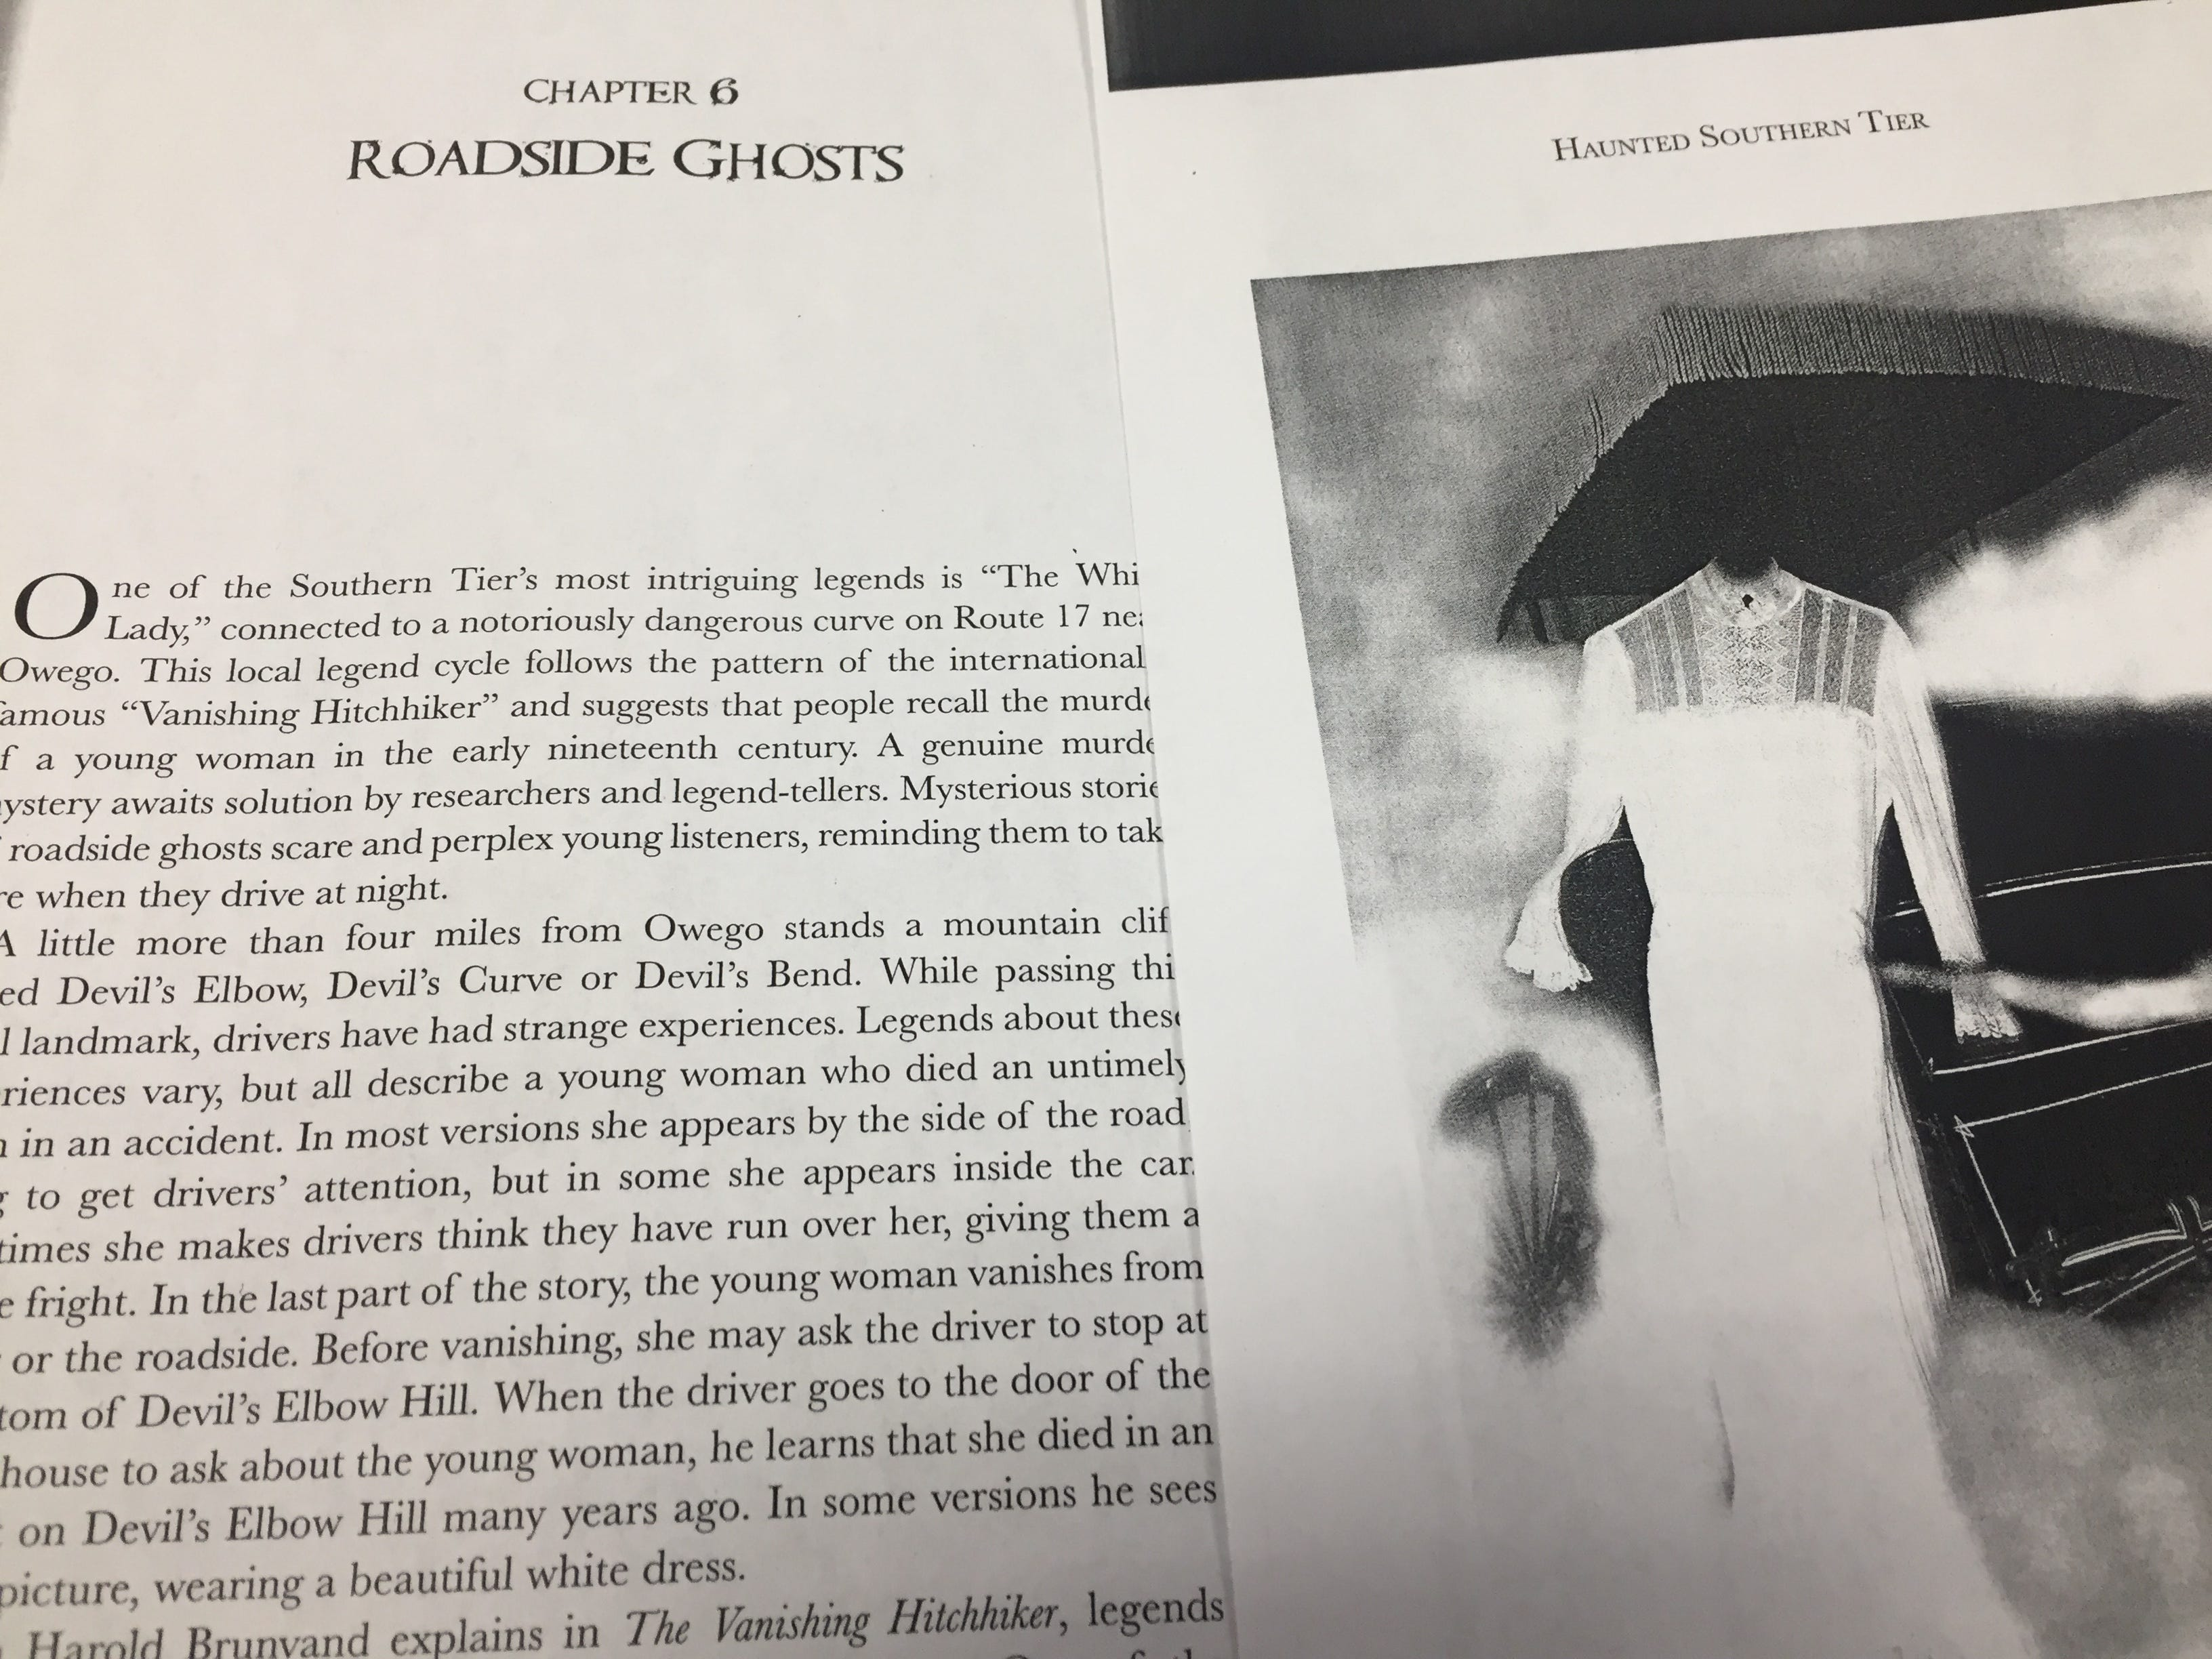 """Elizabeth Tucker, a professor at Binghamton University, documented ghost stories about the """"Lady in White of Devil's Elbow"""" for her book, """"Haunted Southern Tier."""""""